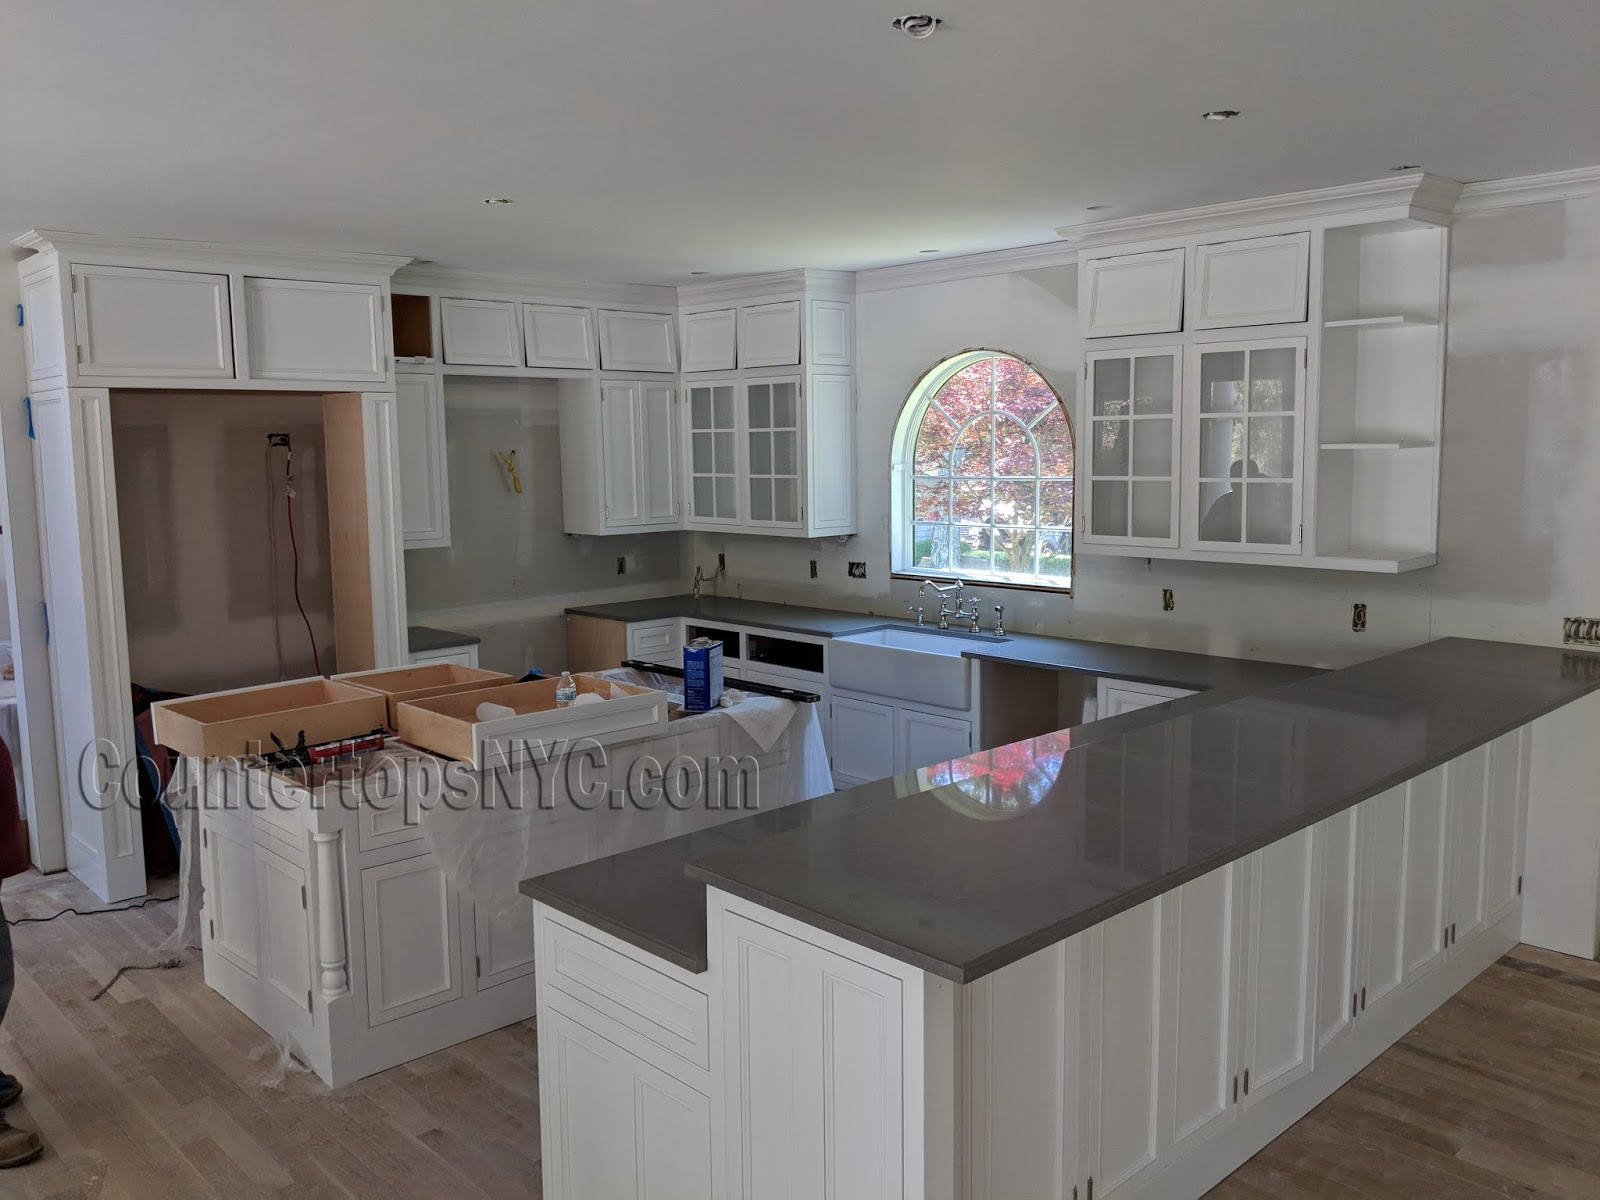 Kitchen Countertop Cabinets Best Color Quartz With White Cabinets Countertops Nyc